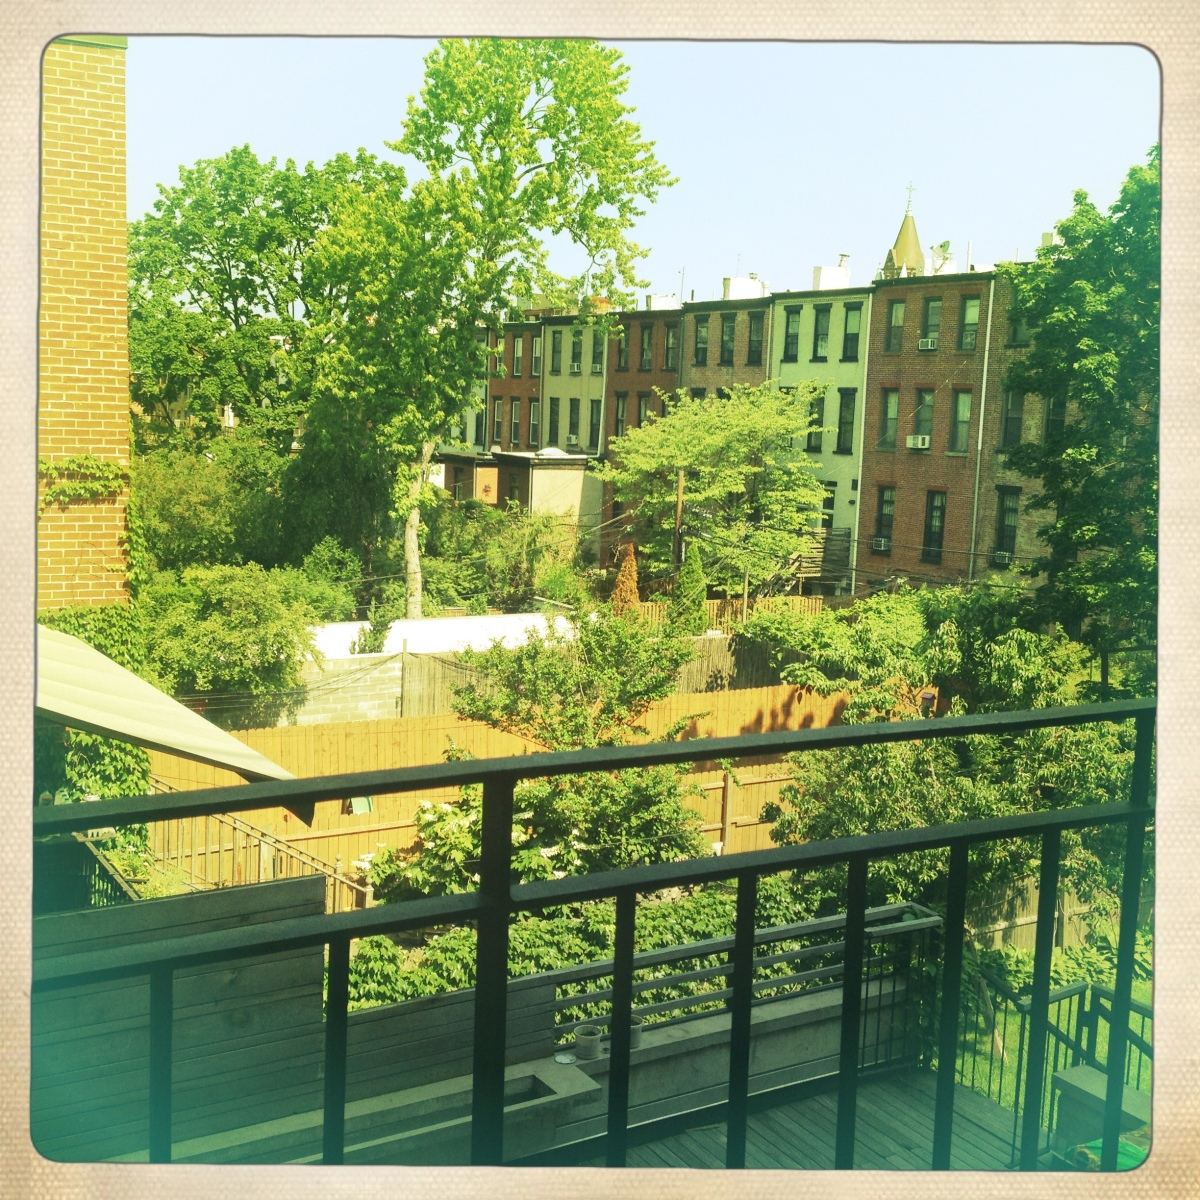 Brooklyn back yards